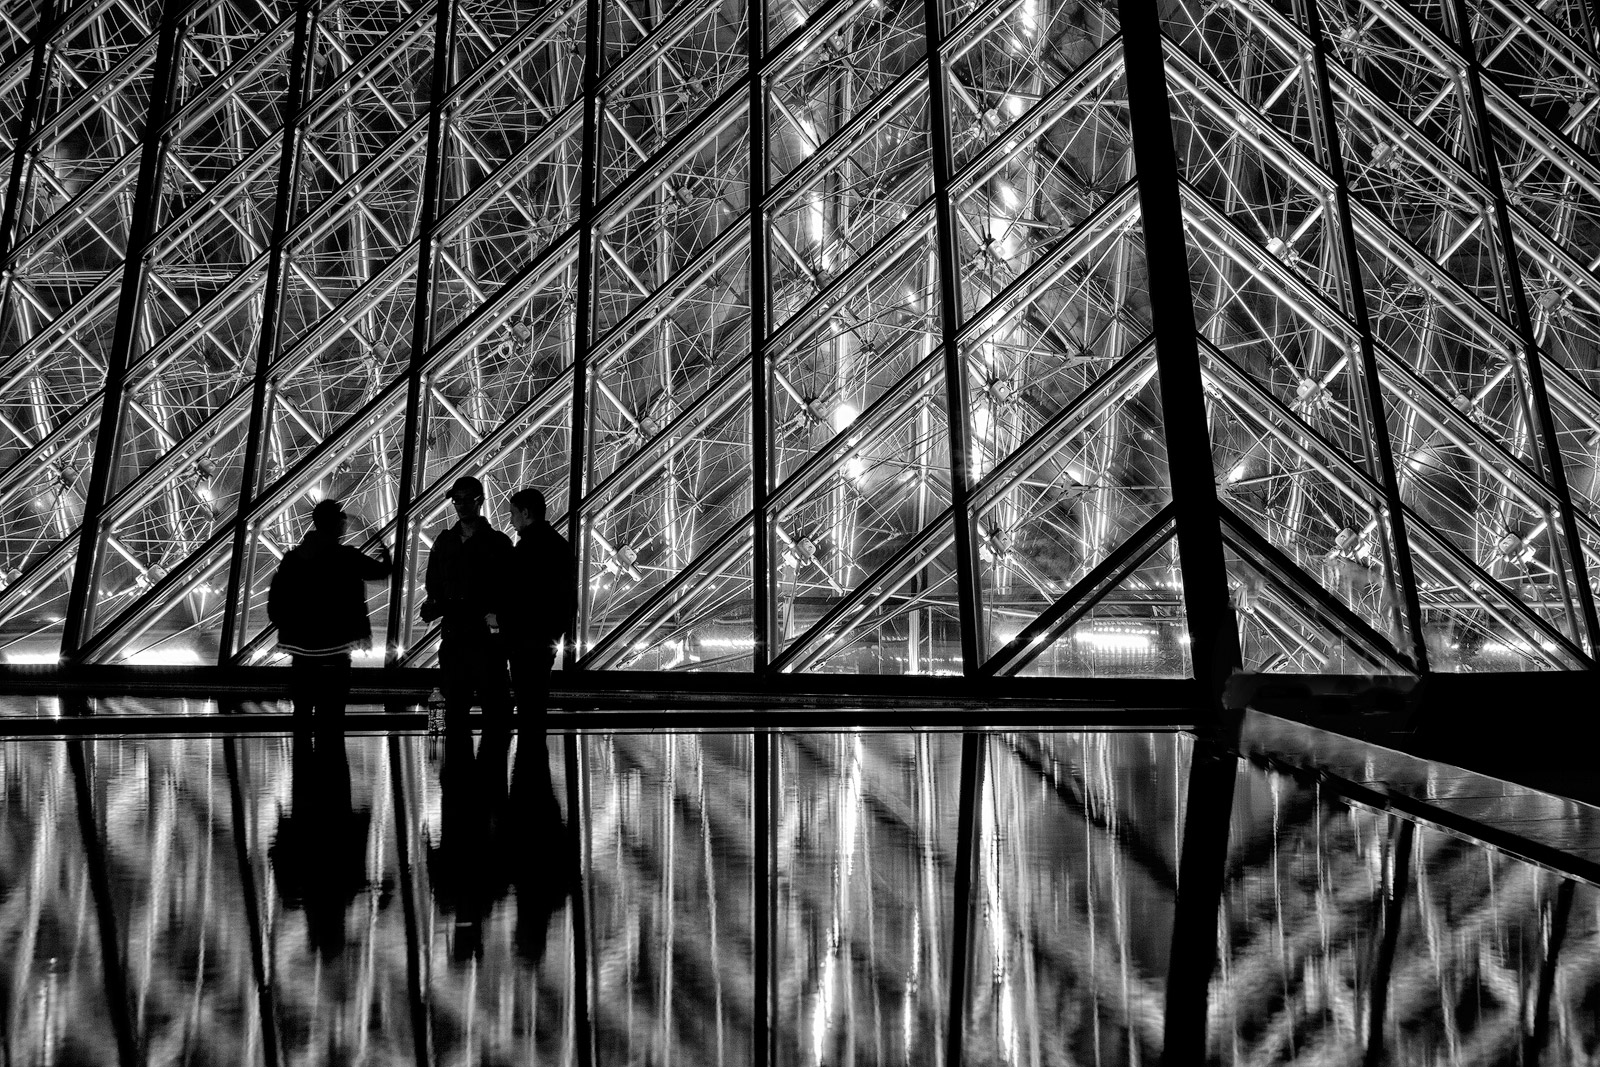 black & white,black and white,building,city scape,cityscape,entrance,europe,france,horizontal,louvre,night,paris,pyramid,structure parts,black & whi, photo